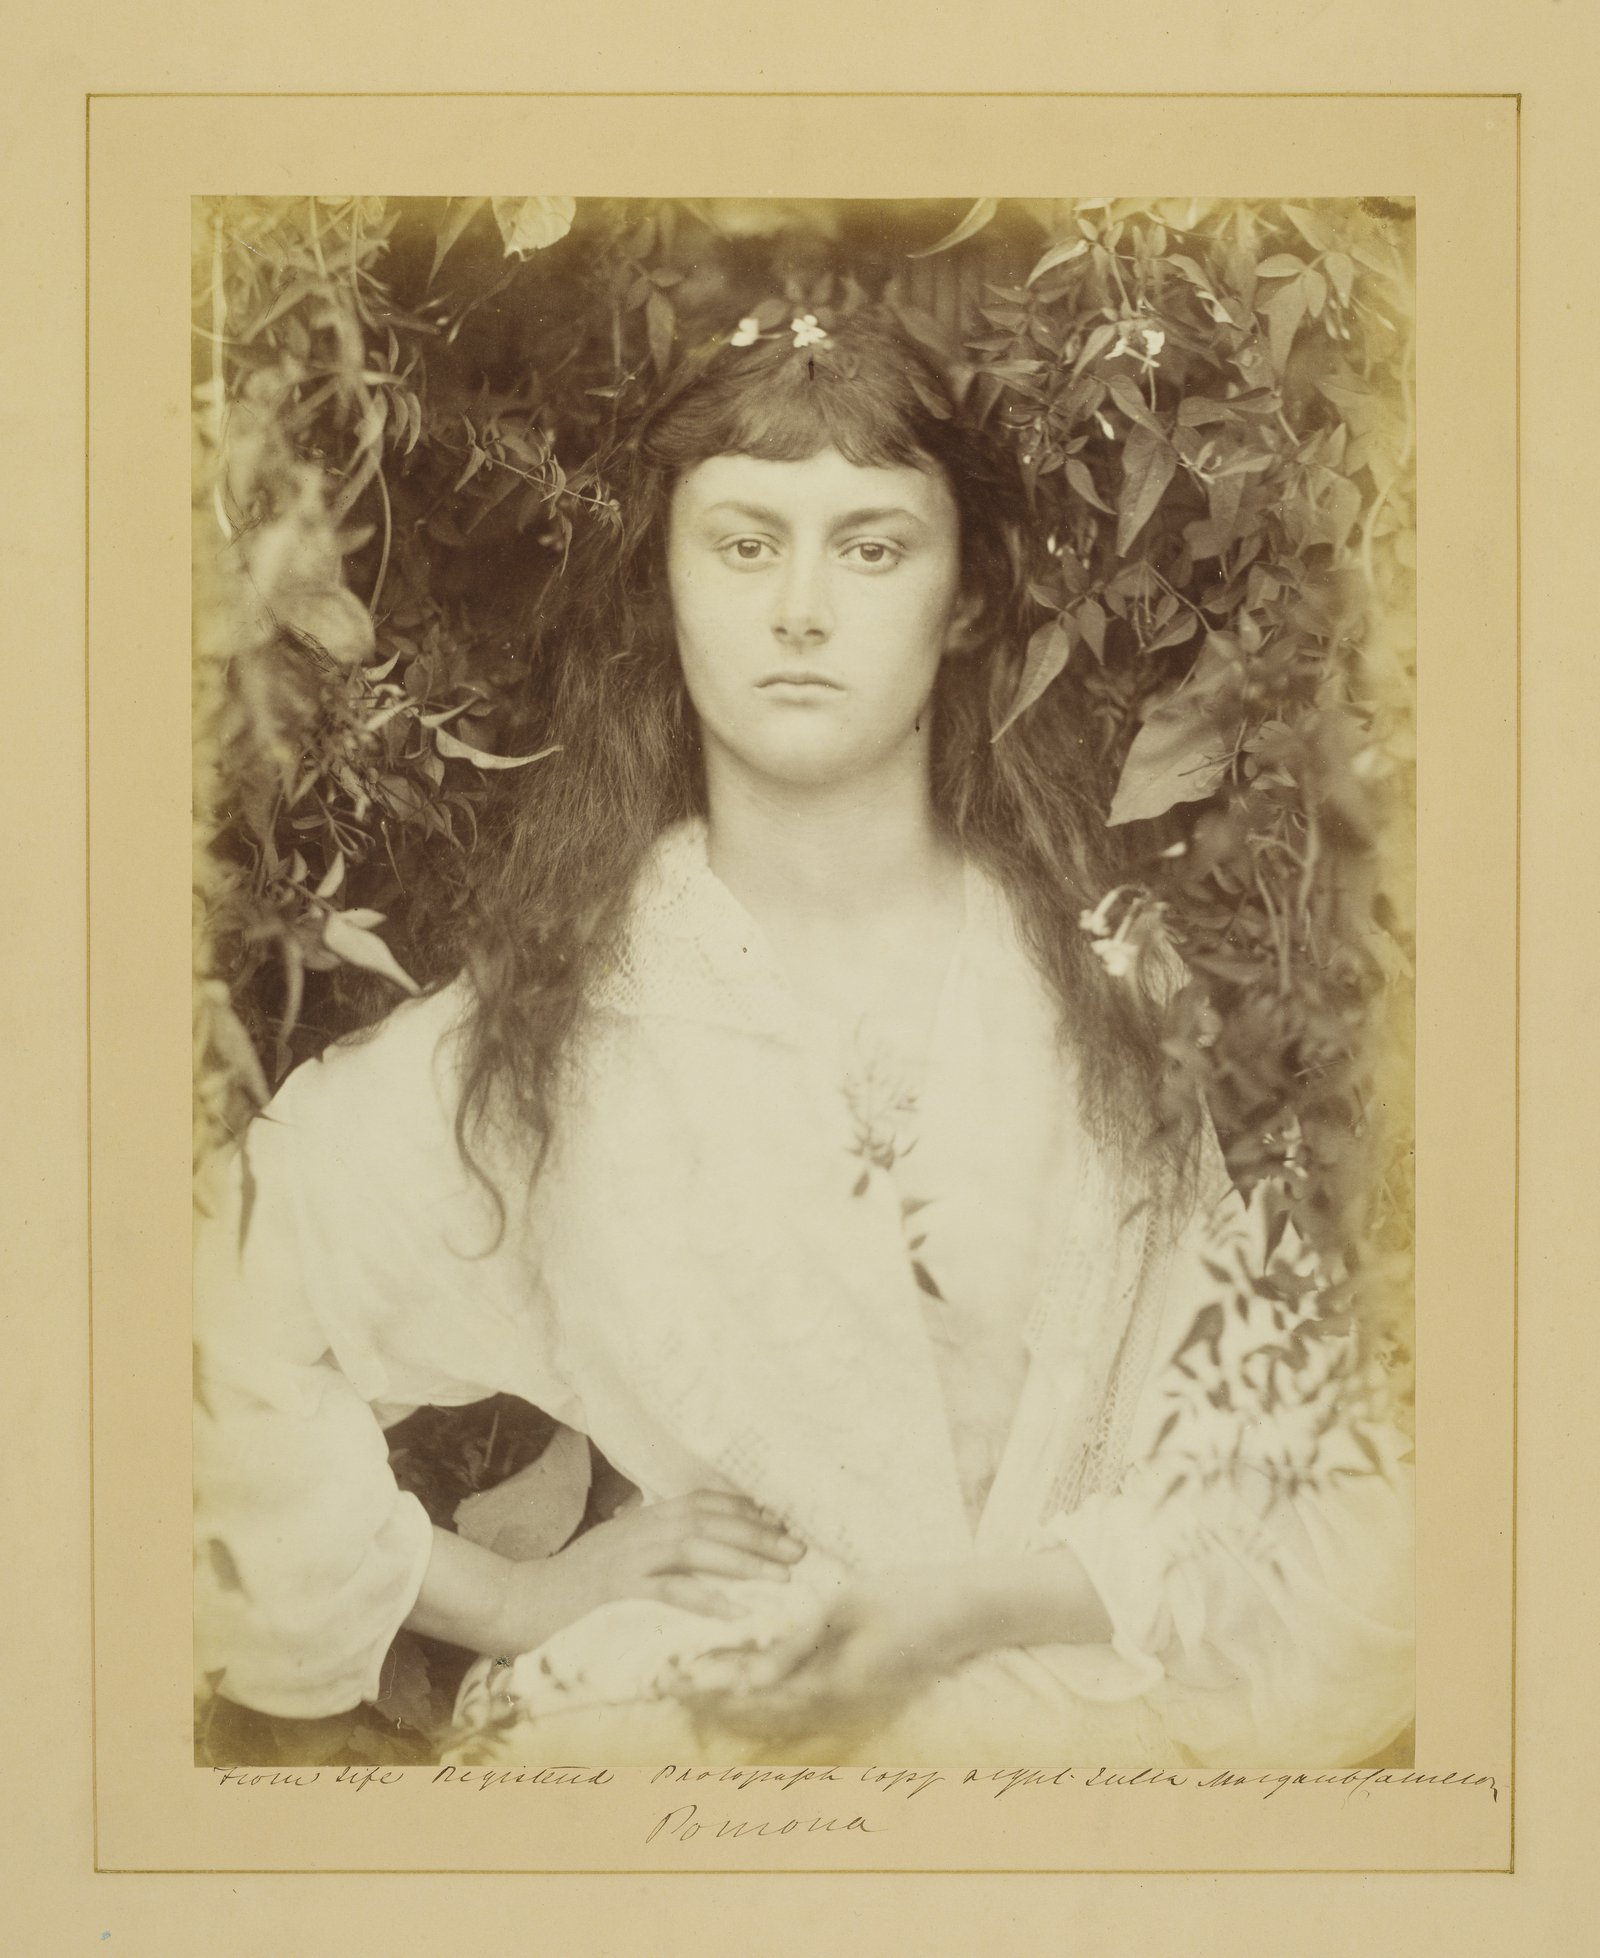 Julia Margaret Cameron, Pomona, 1887, Albumen print, © The RPS Collection at the Victoria and Albert Museum, London